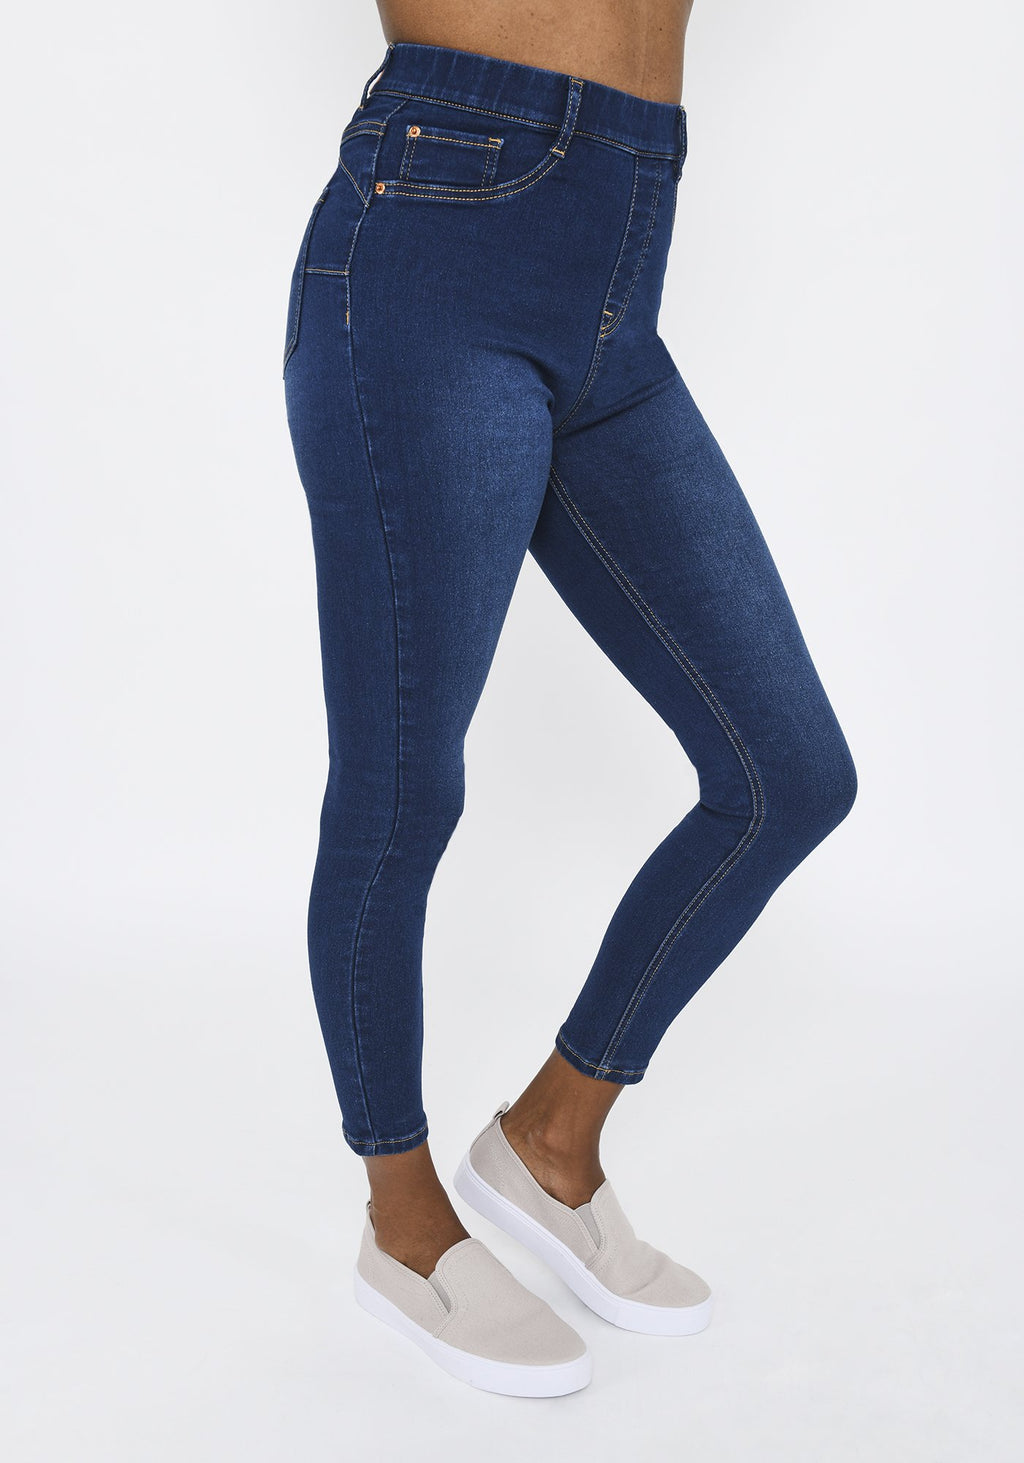 Dark Blue Ankle Grazer Jeggings